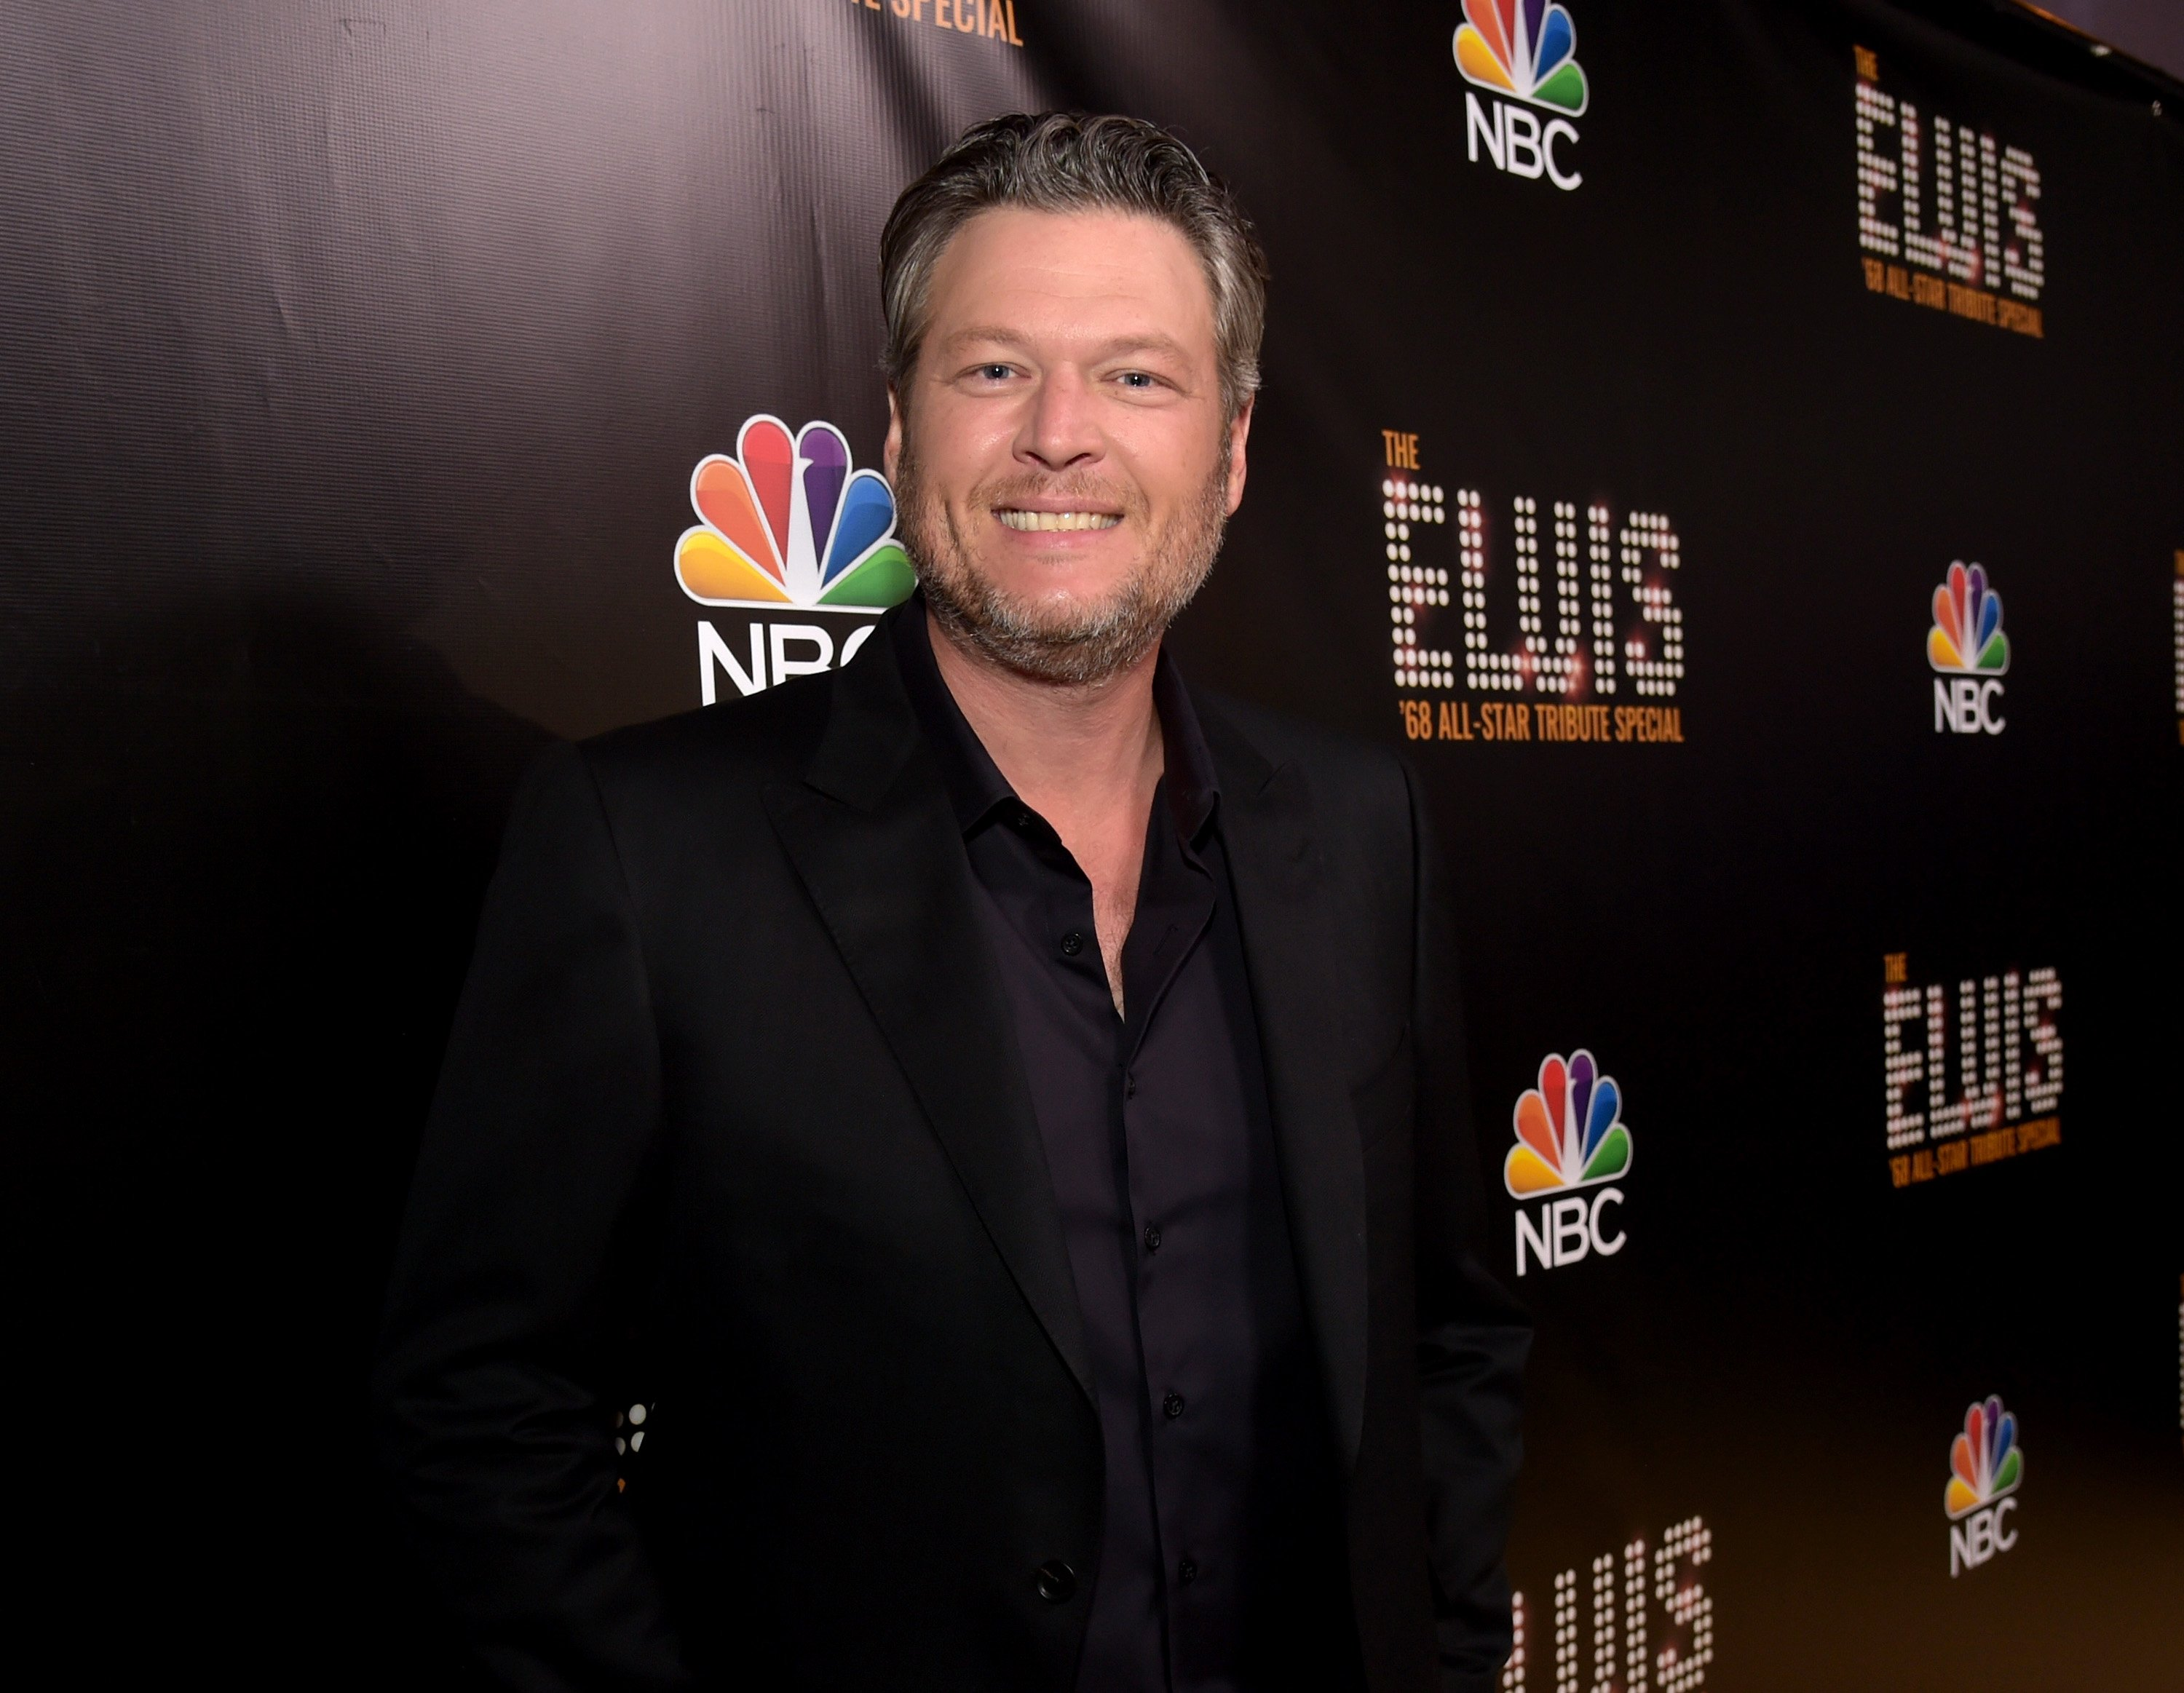 Blake Shelton at The Elvis '68 All-Star Tribute Special at Universal Studios on October 11, 2018 | Photo: GettyImages